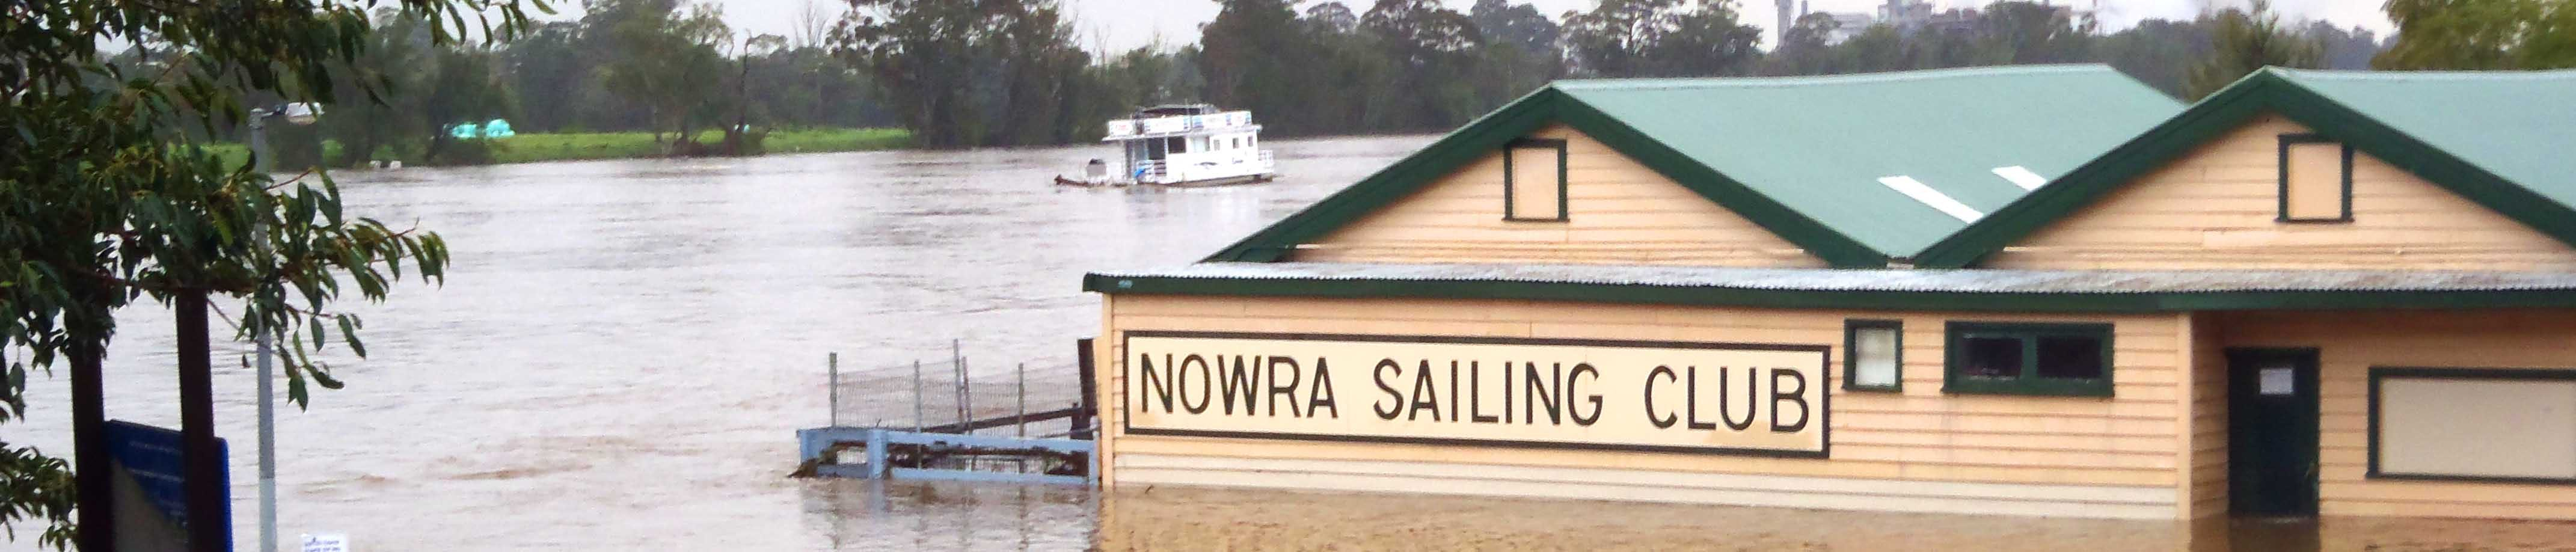 Photo of Nowra Sailing Club under water due to flooding in the Lower Shoalhaven